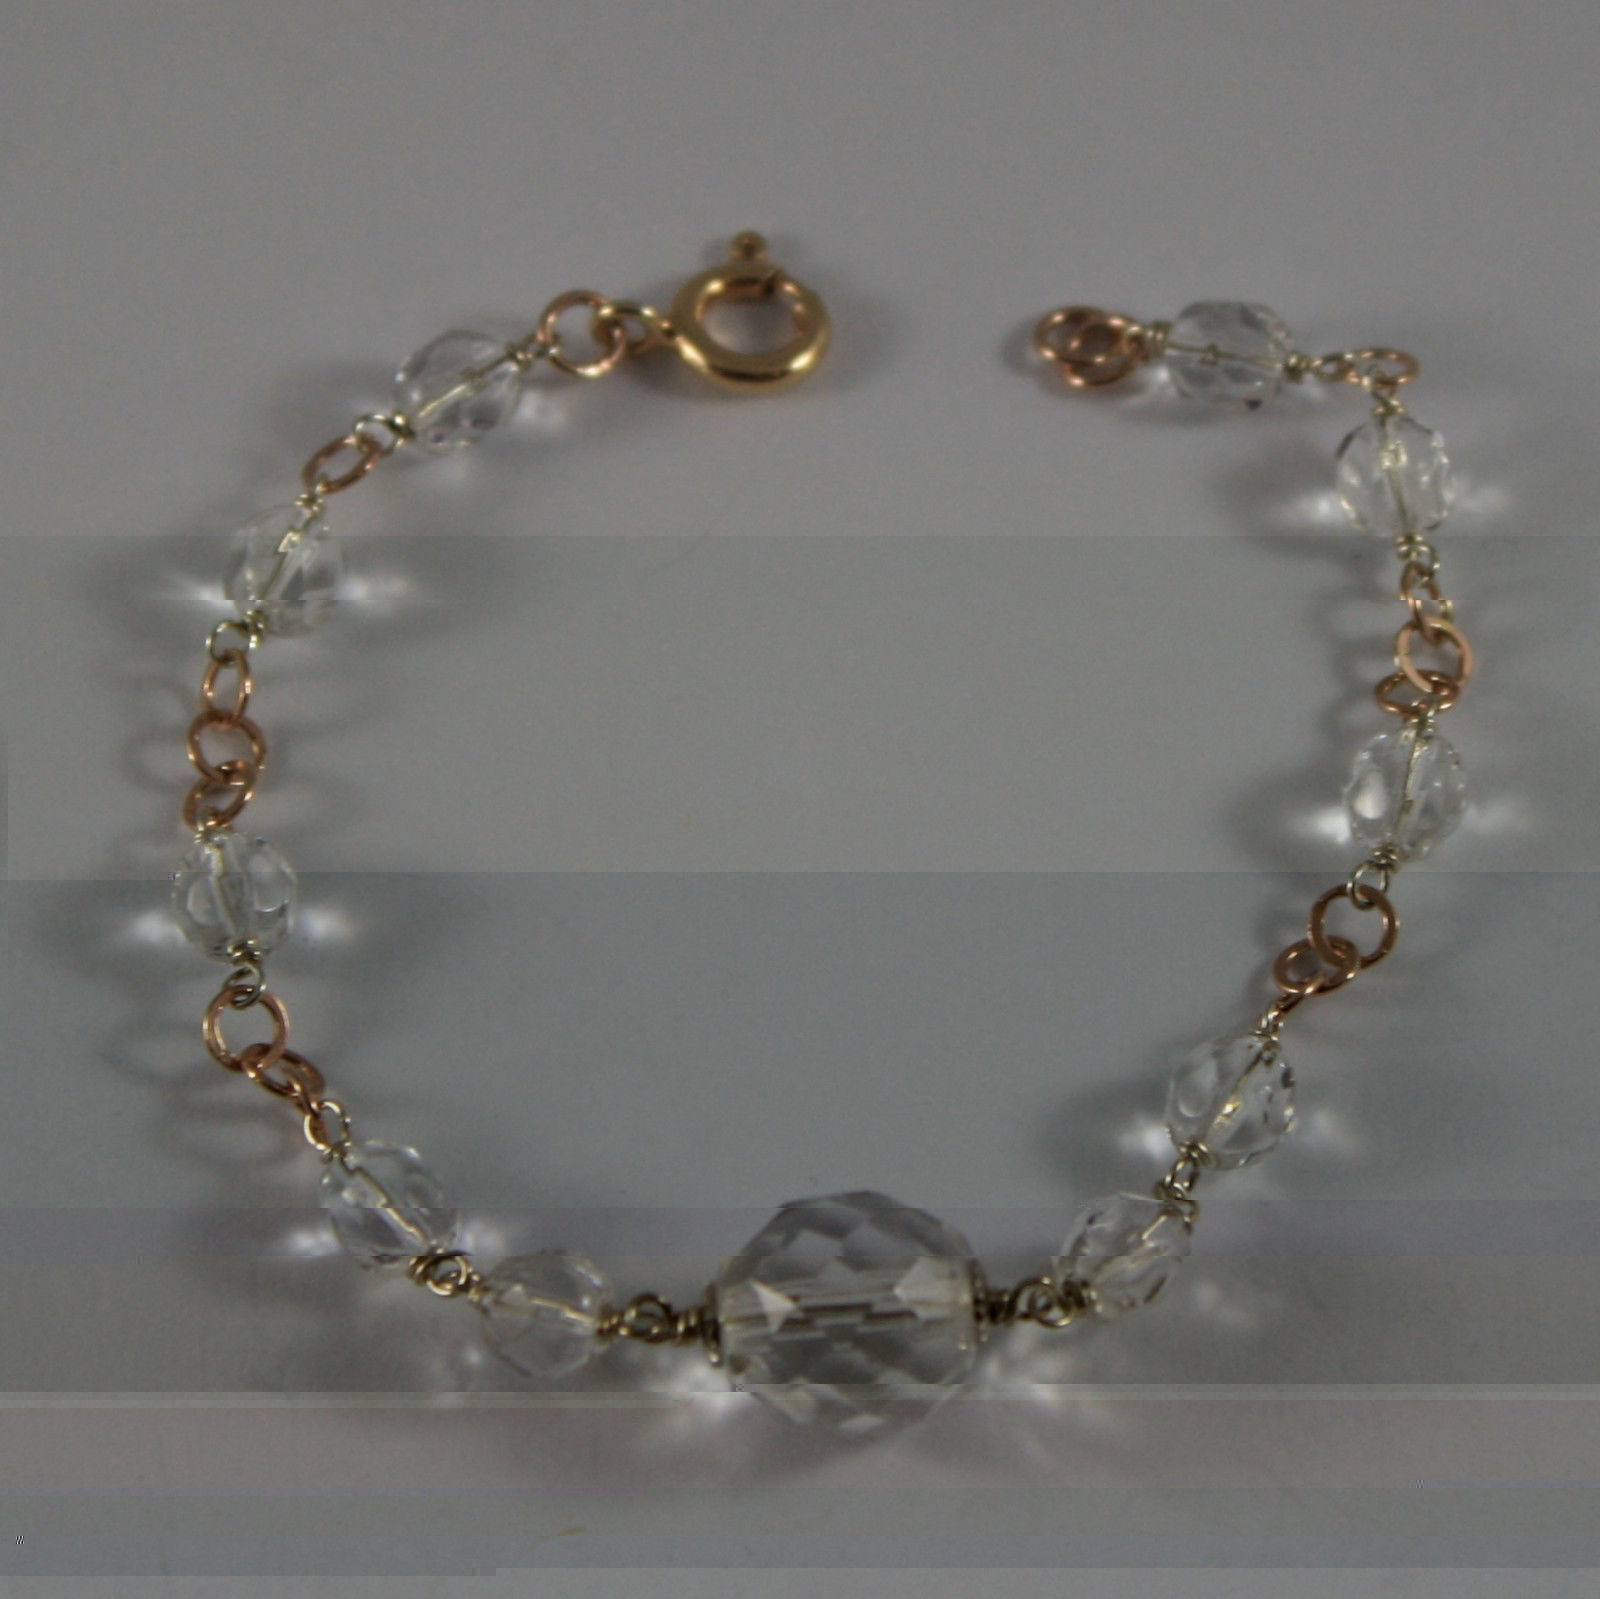 .925 RHODIUM SILVER ROSE GOLD PLATED BRACELET WITH TRANSPARENT CRYSTALS